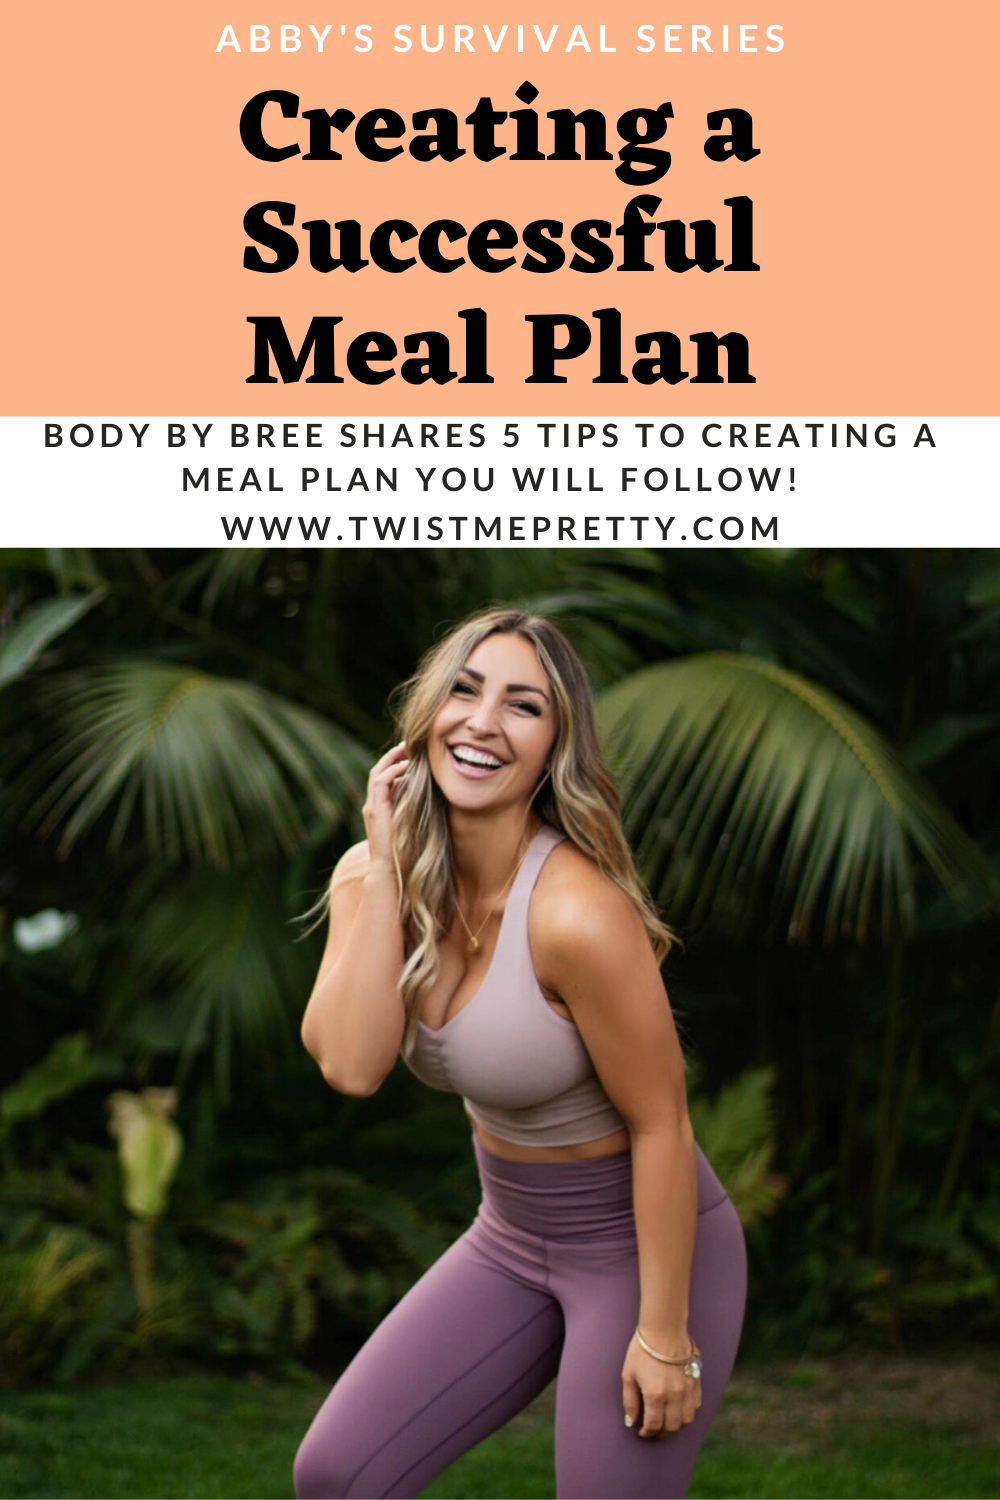 Abby's Survival Series-- Creating a Successful Meal Plan by Body By Bree. www.TwistMePretty.com